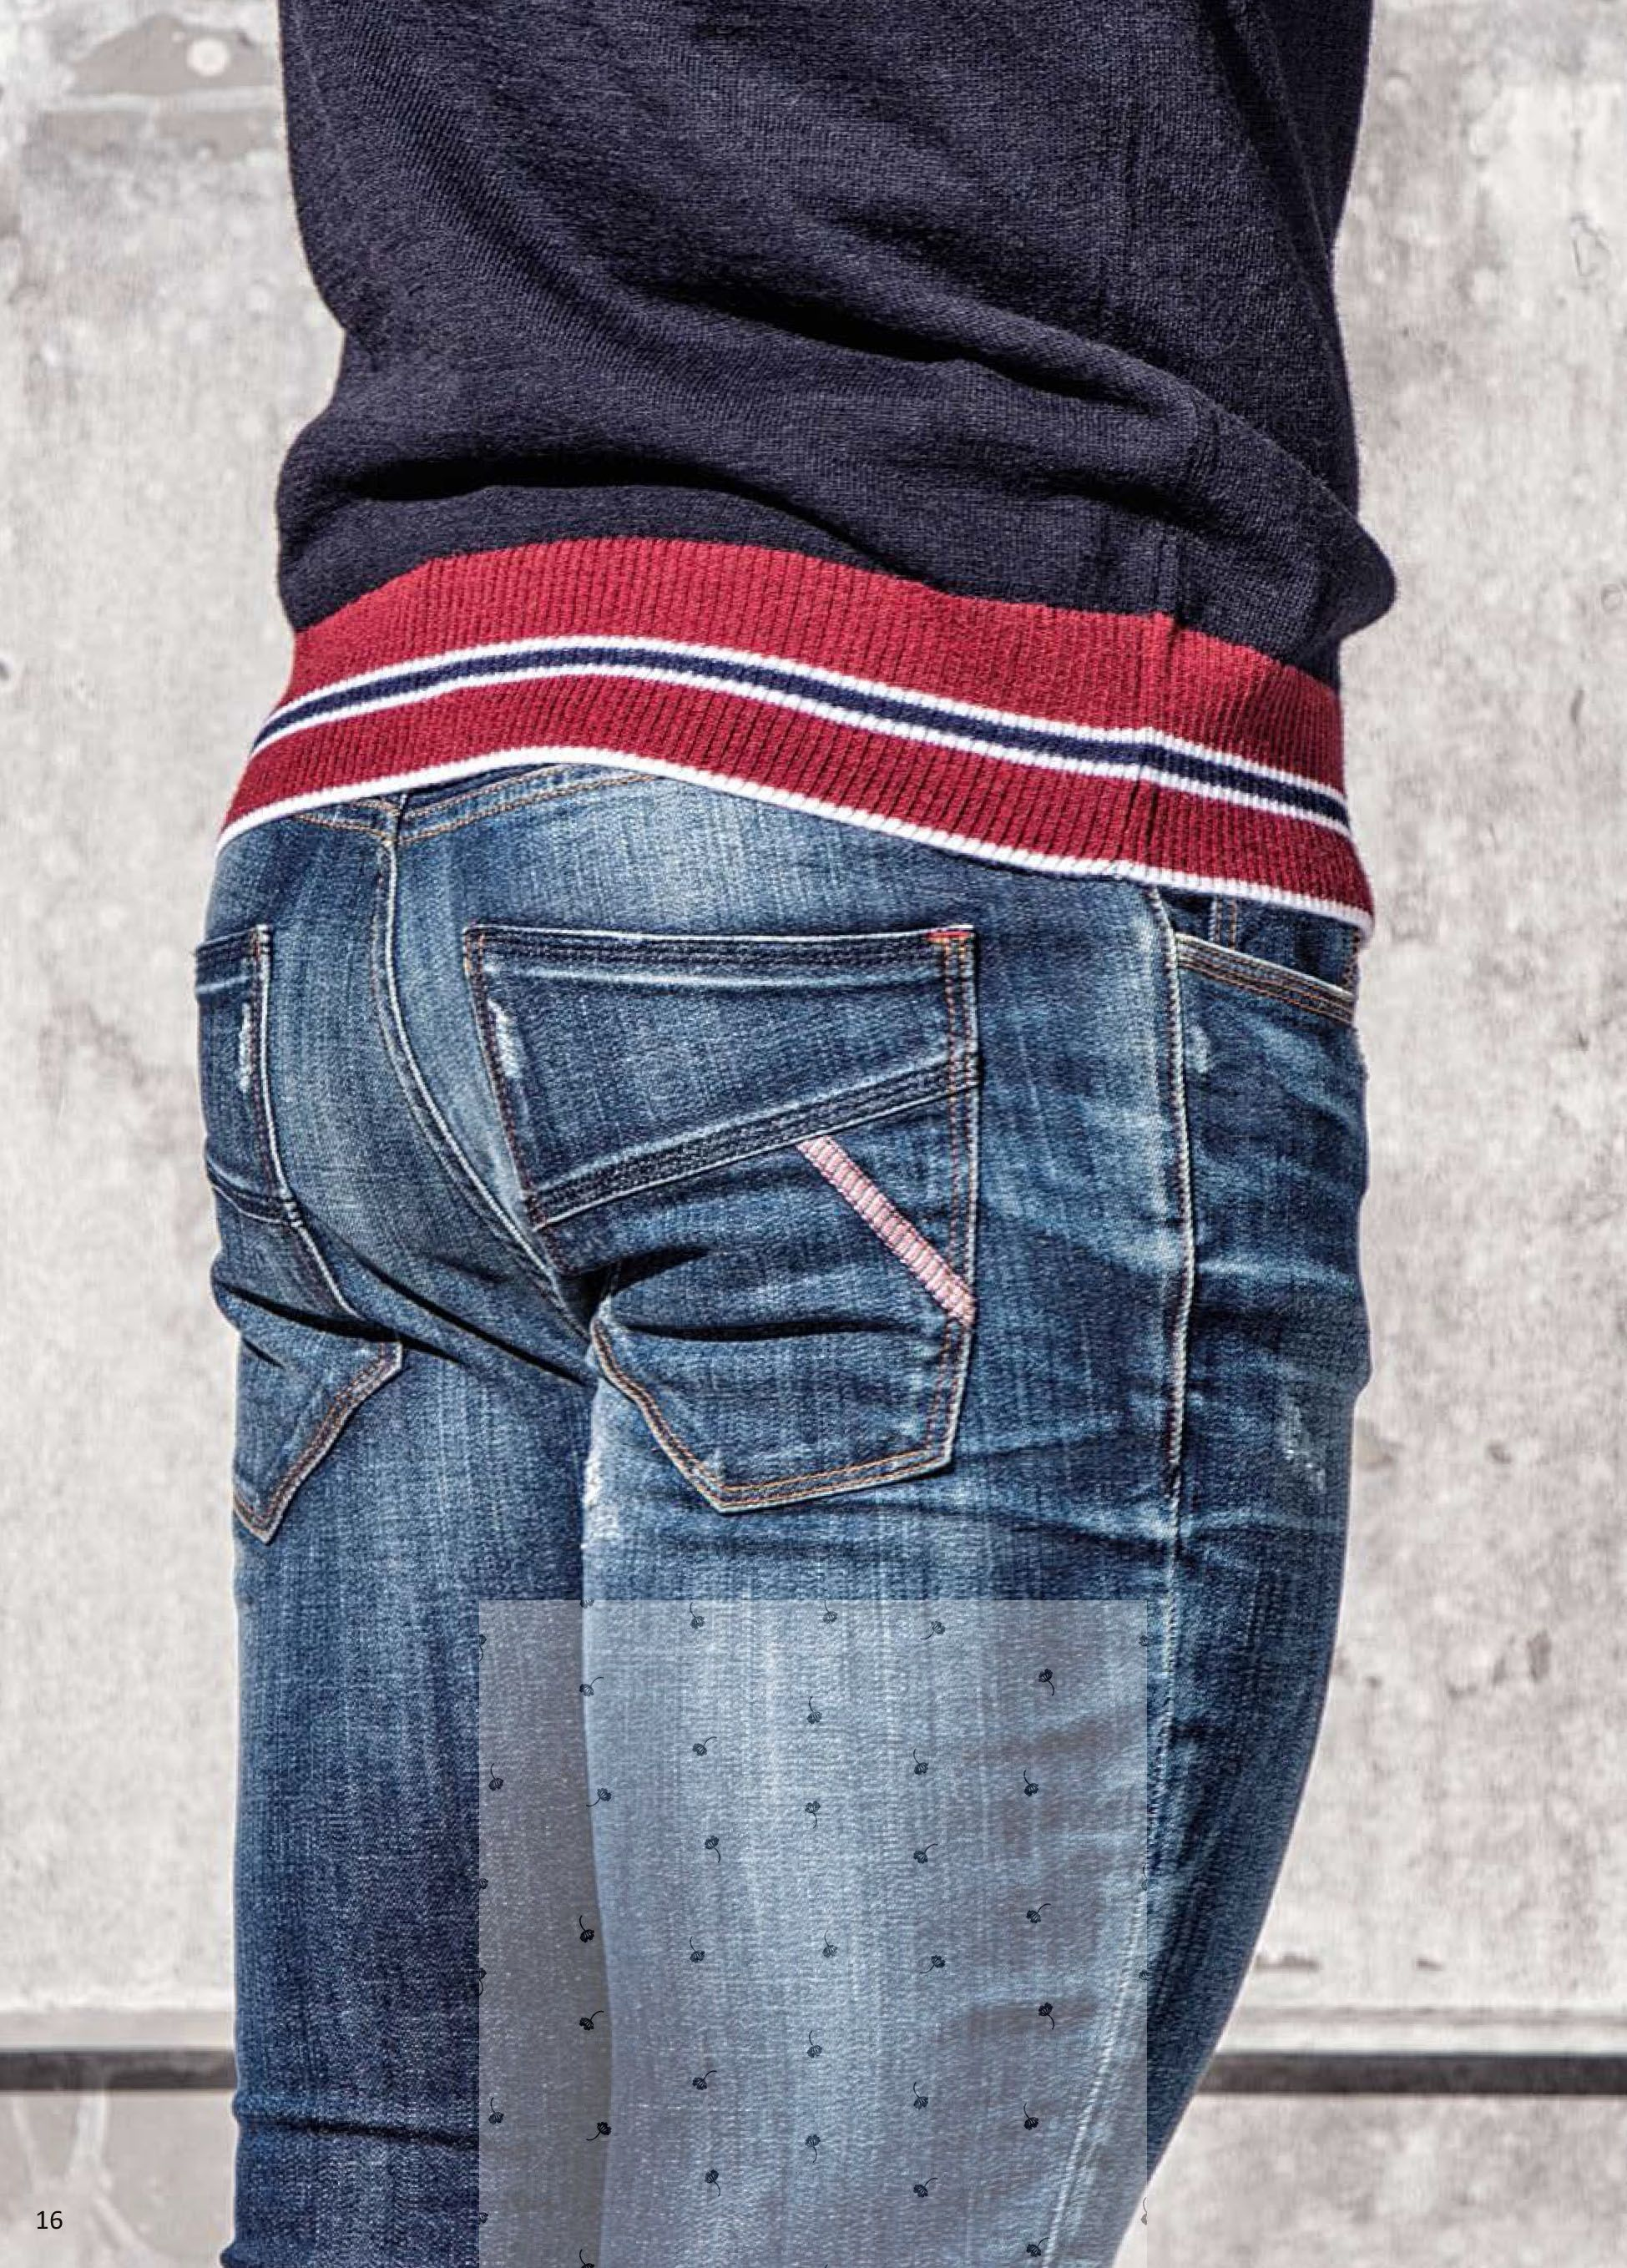 Simple and stylish tips and tricks urban wear for men winter urban